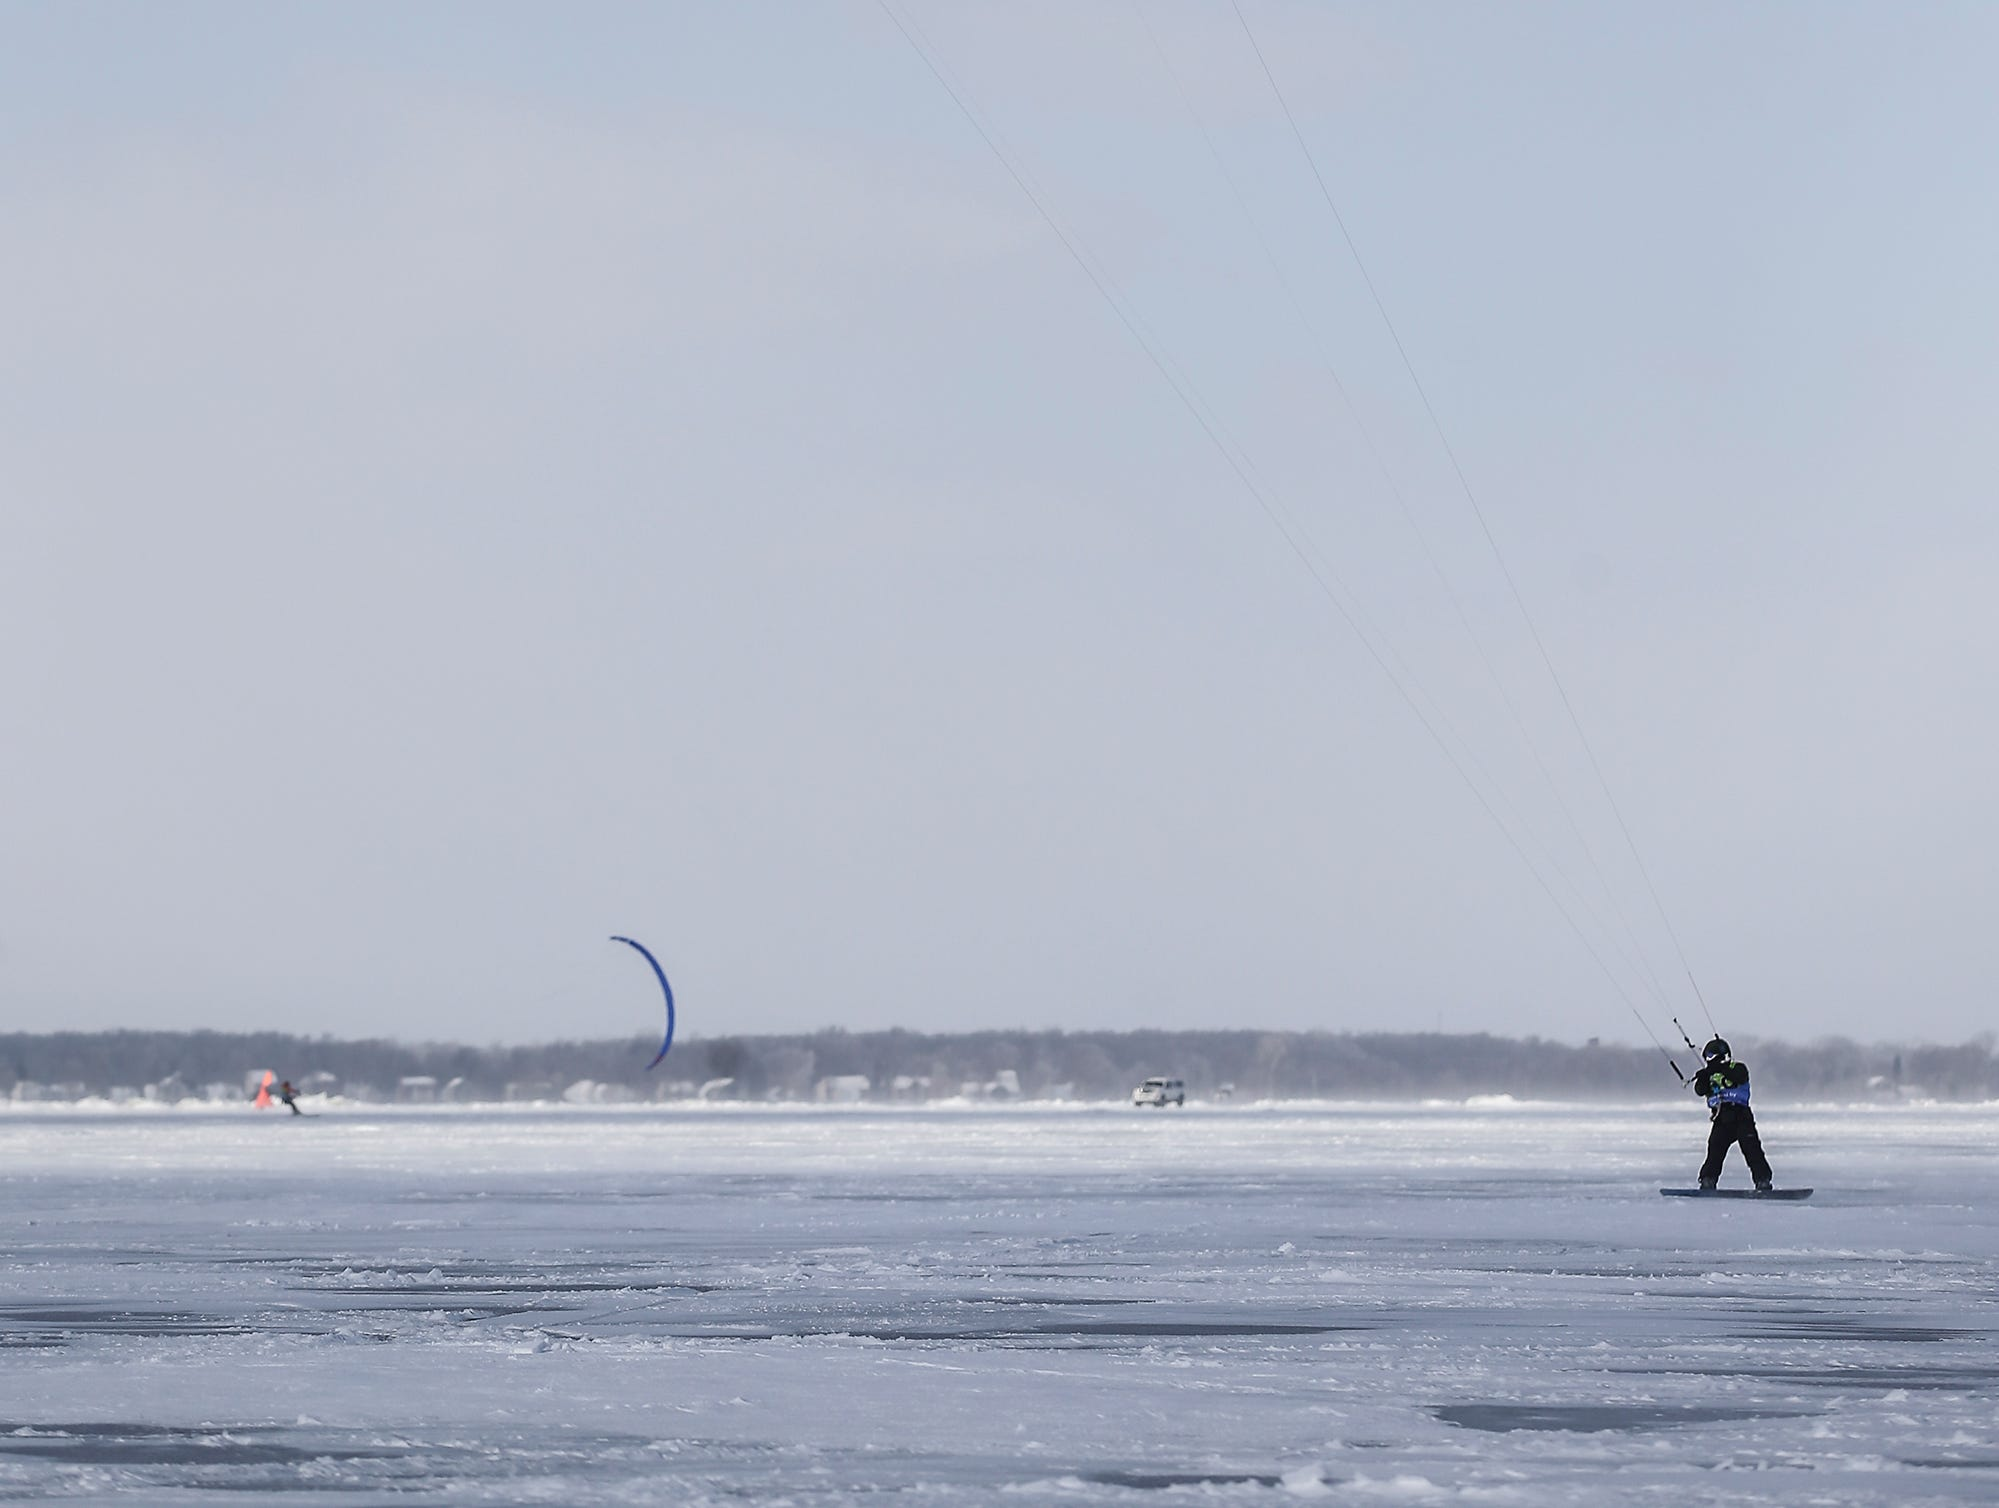 An ice sailer takes advantage of windy conditions Friday, February 8, 2019 on Lake Winnebago during Sturgeon Spectacular. Sturgeon Spectacular is a weeklong celebration of the lake sturgeon spearing season and includes events on and off the ice in the Fond du Lac area. Doug Raflik/USA TODAY NETWORK-Wisconsin